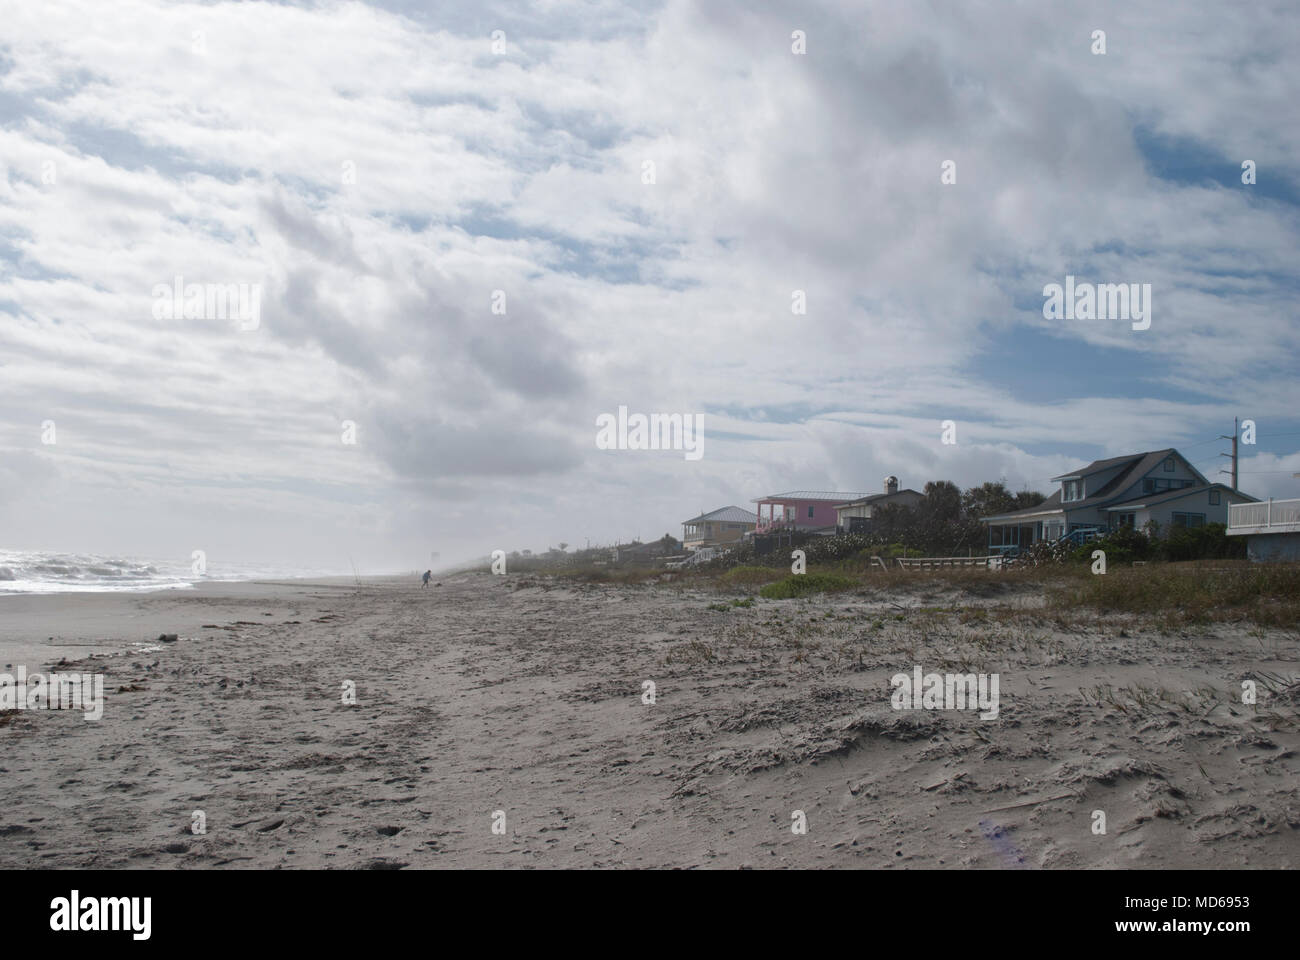 Ocean Shore Beach House Backgrounds Waves Surfing Fishing Restaurants On The Beach Stock Photo Alamy